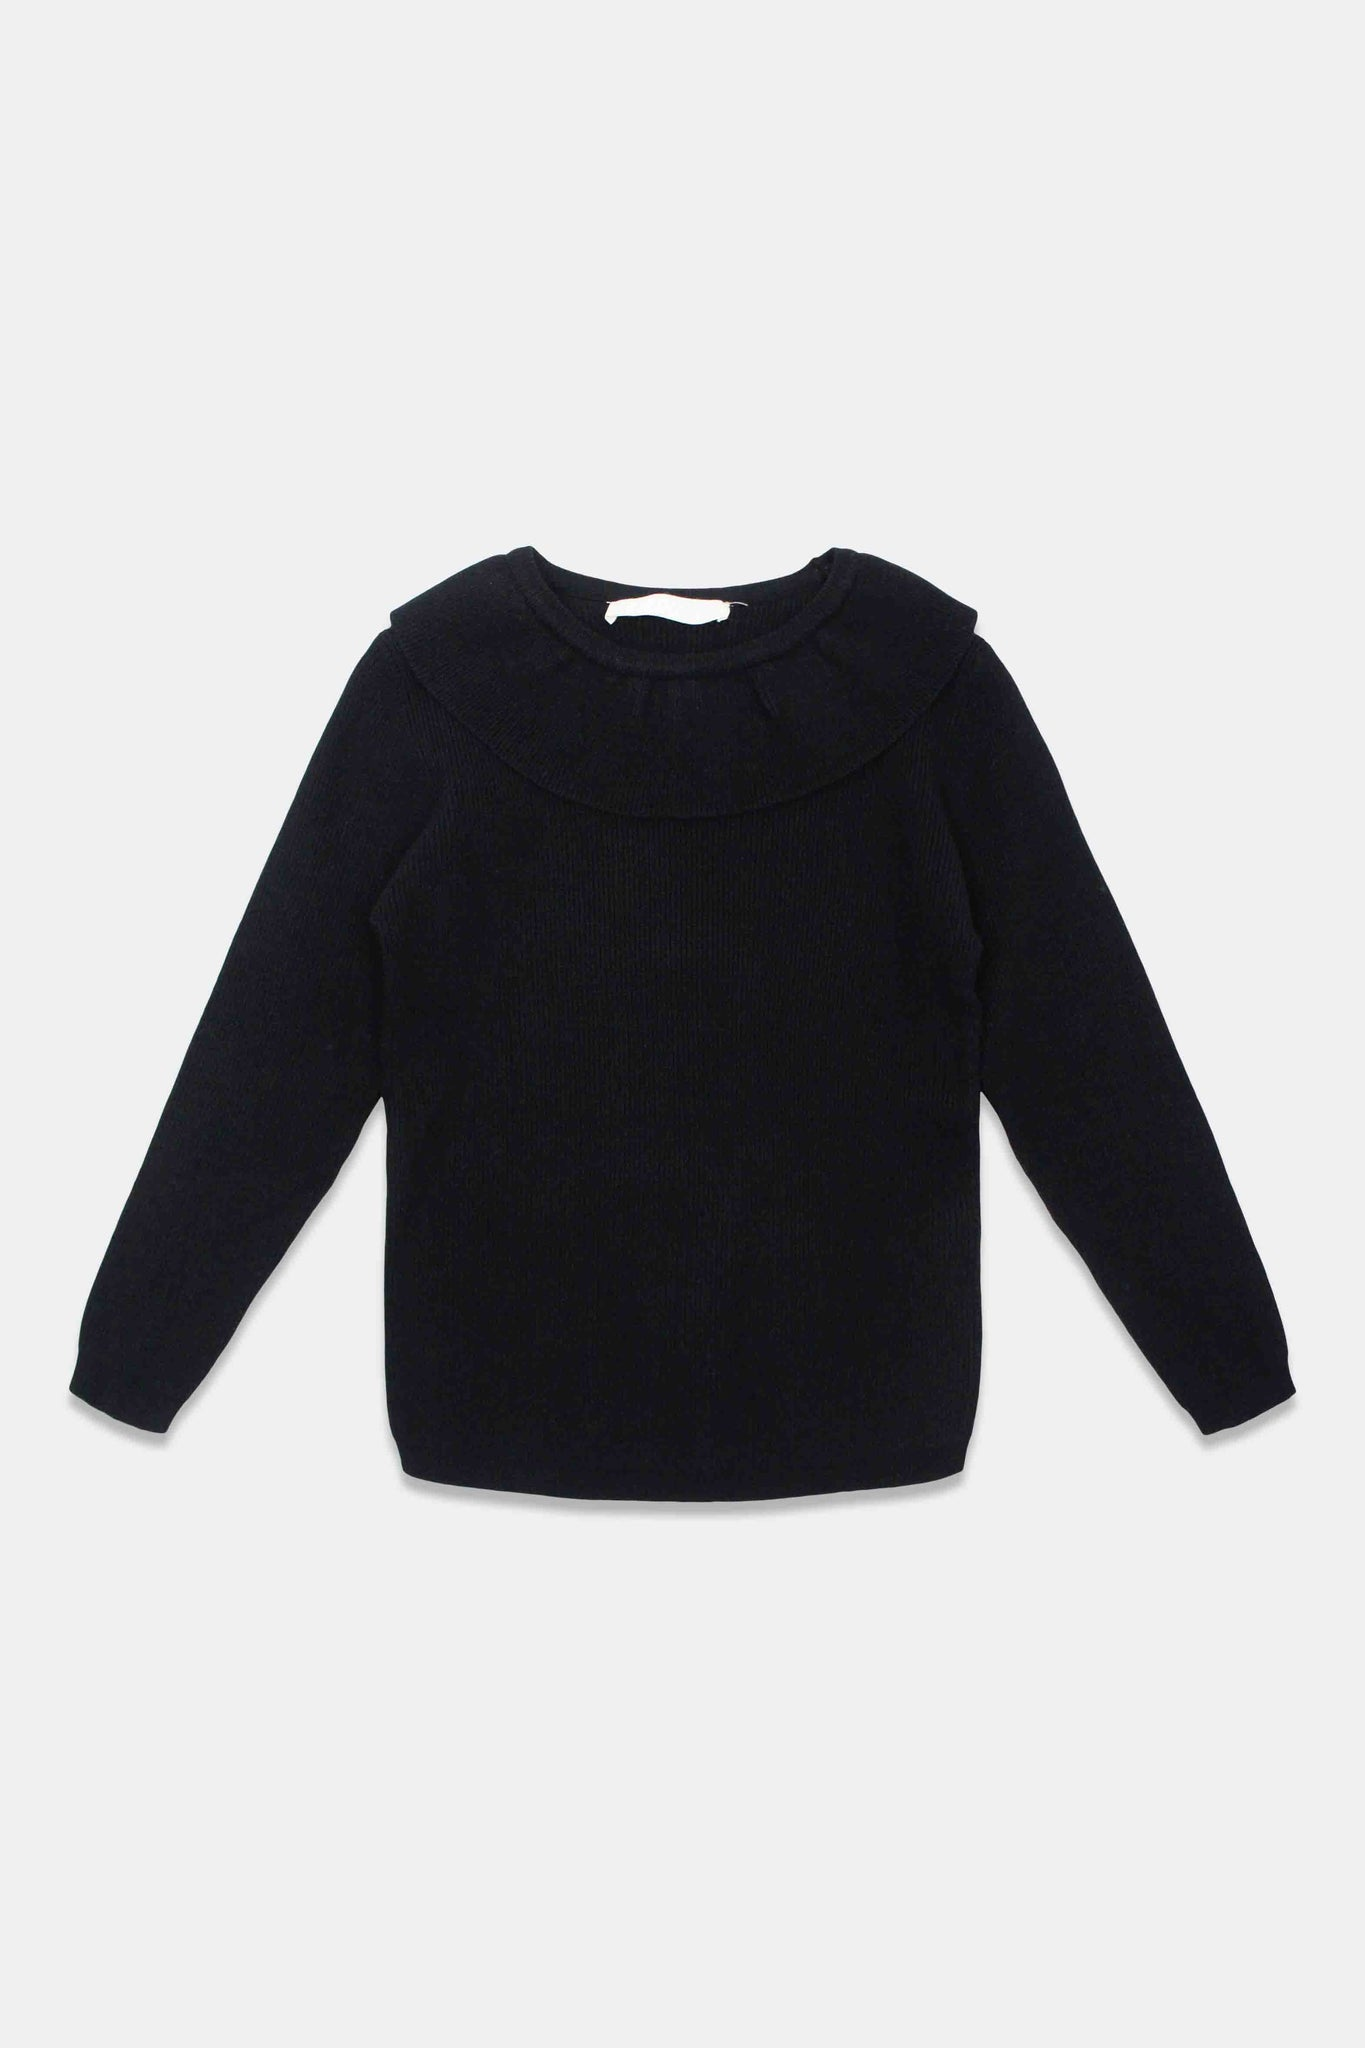 Lilou Black Arcola Top